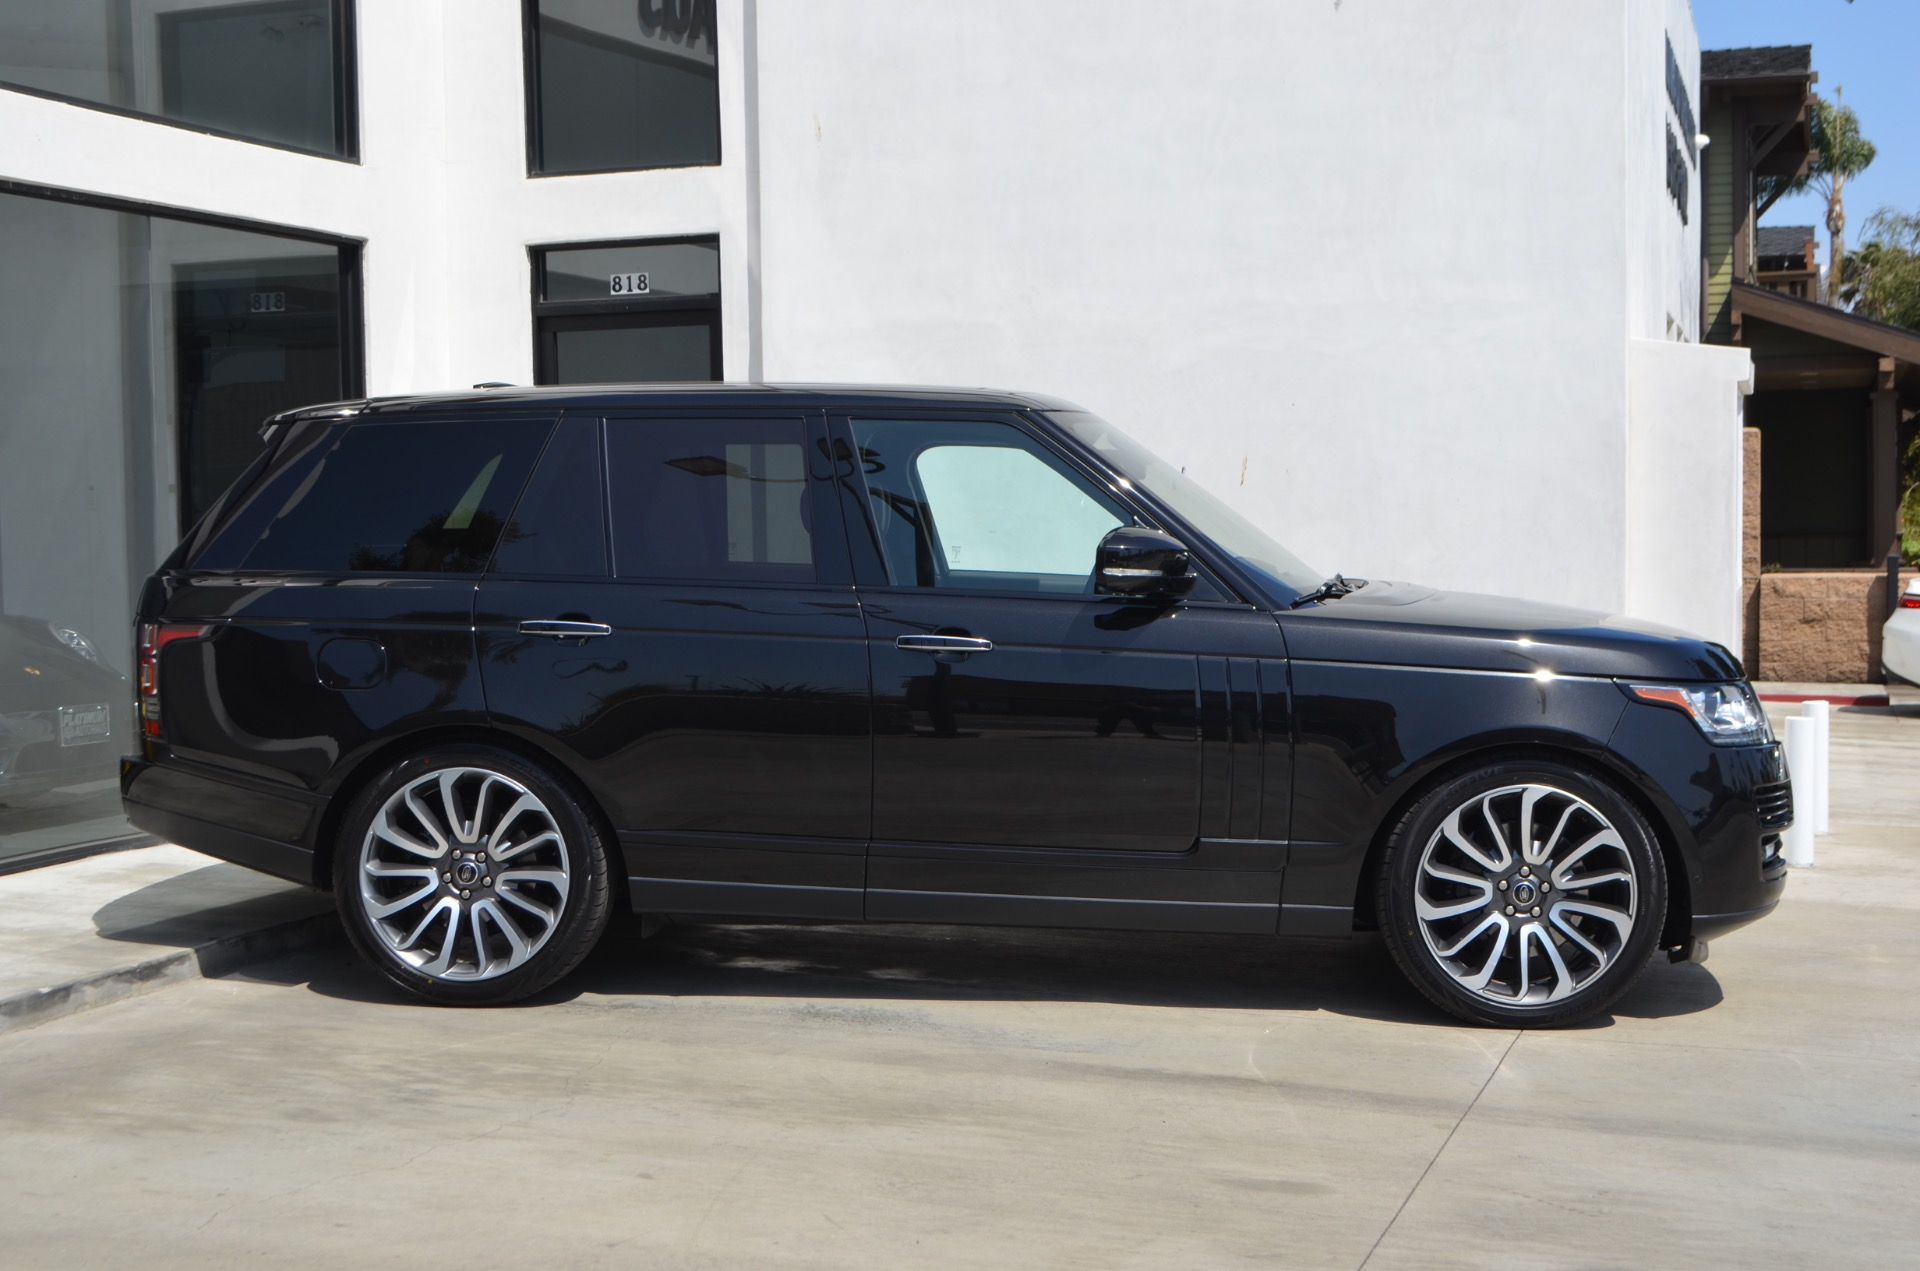 Used-2013-Land-Rover-Range-Rover-Autobiography